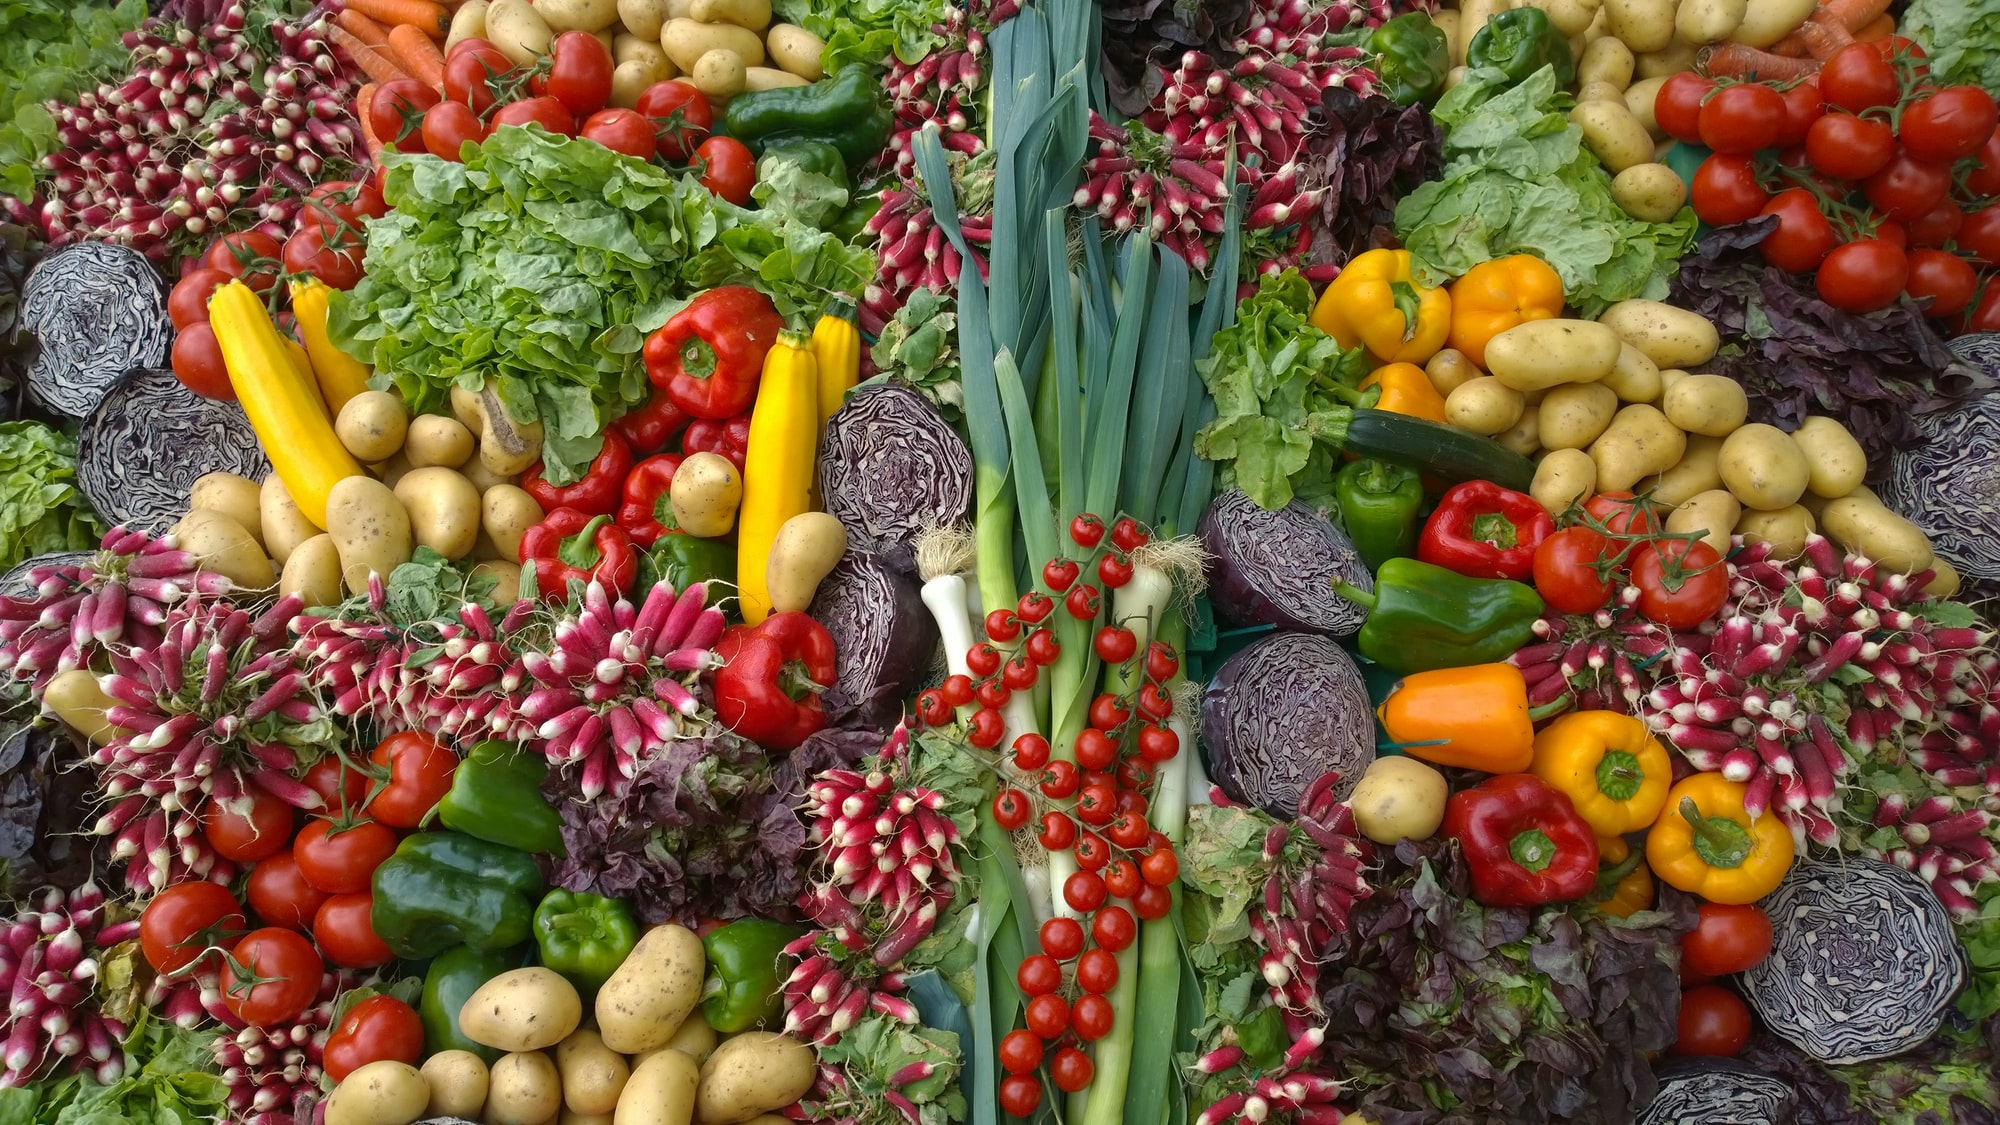 Mix of vegetables at the Flower Show in Chantilly